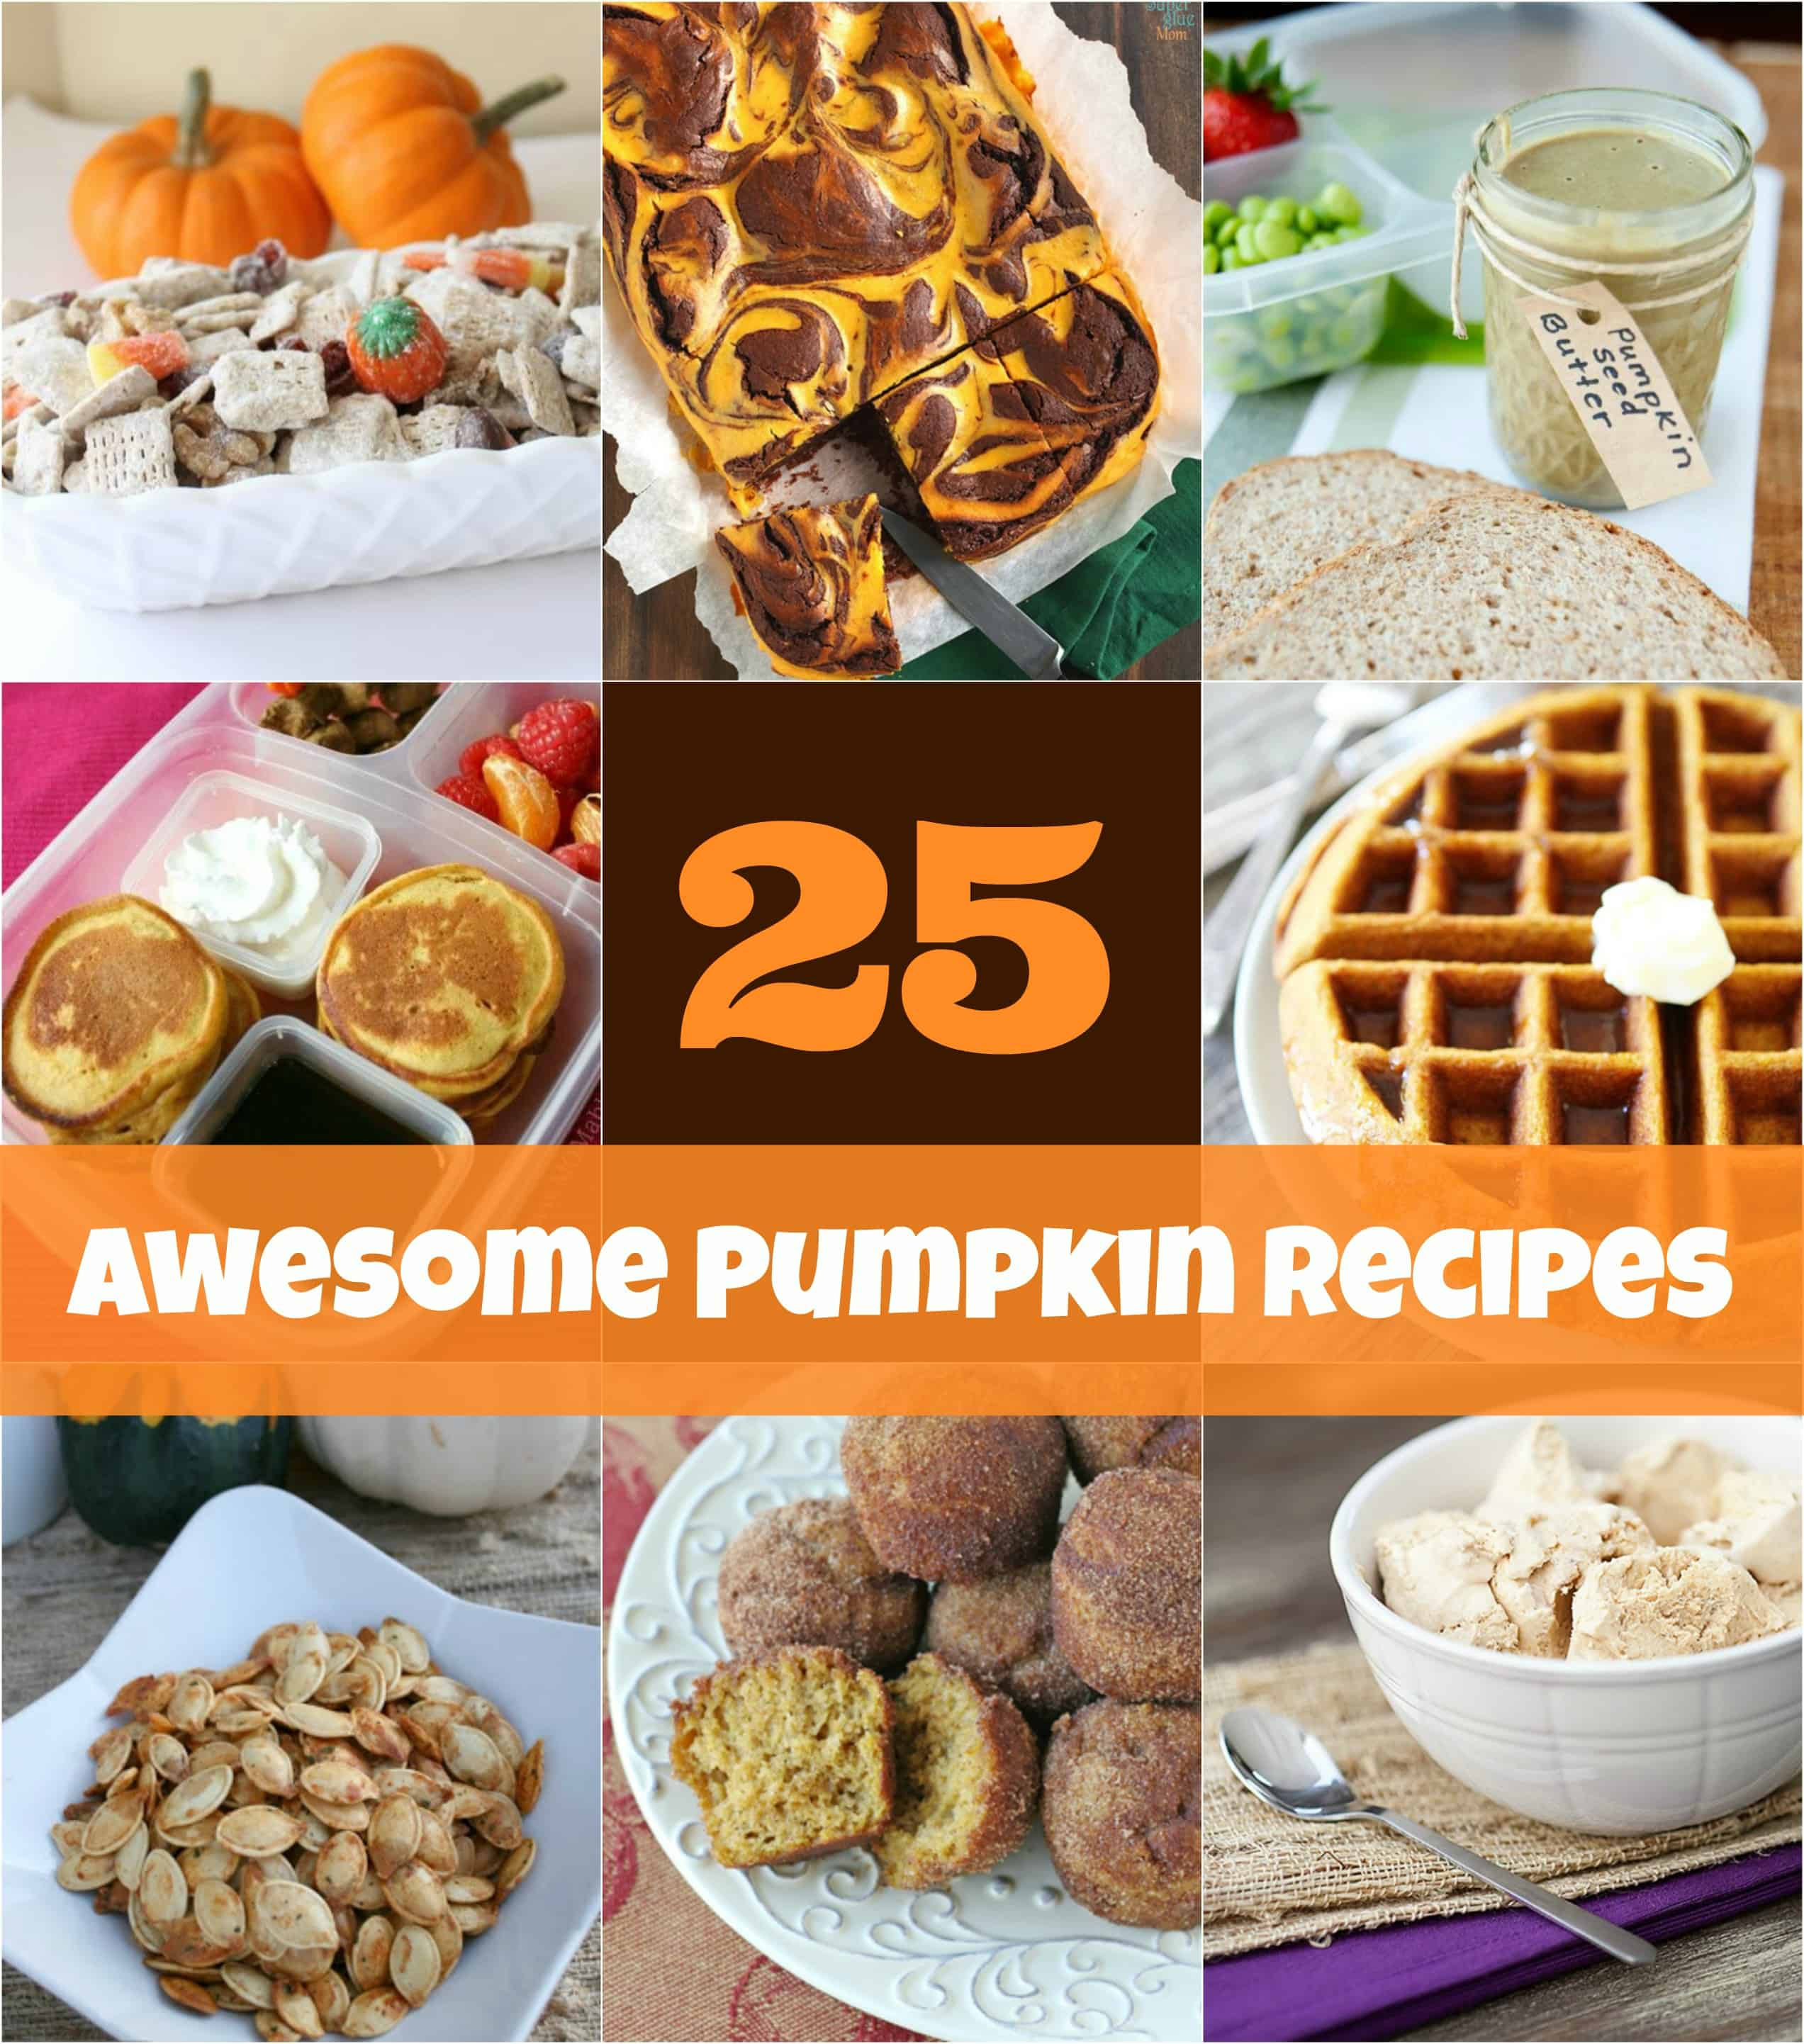 25 awesome pumpkin recipe ideas